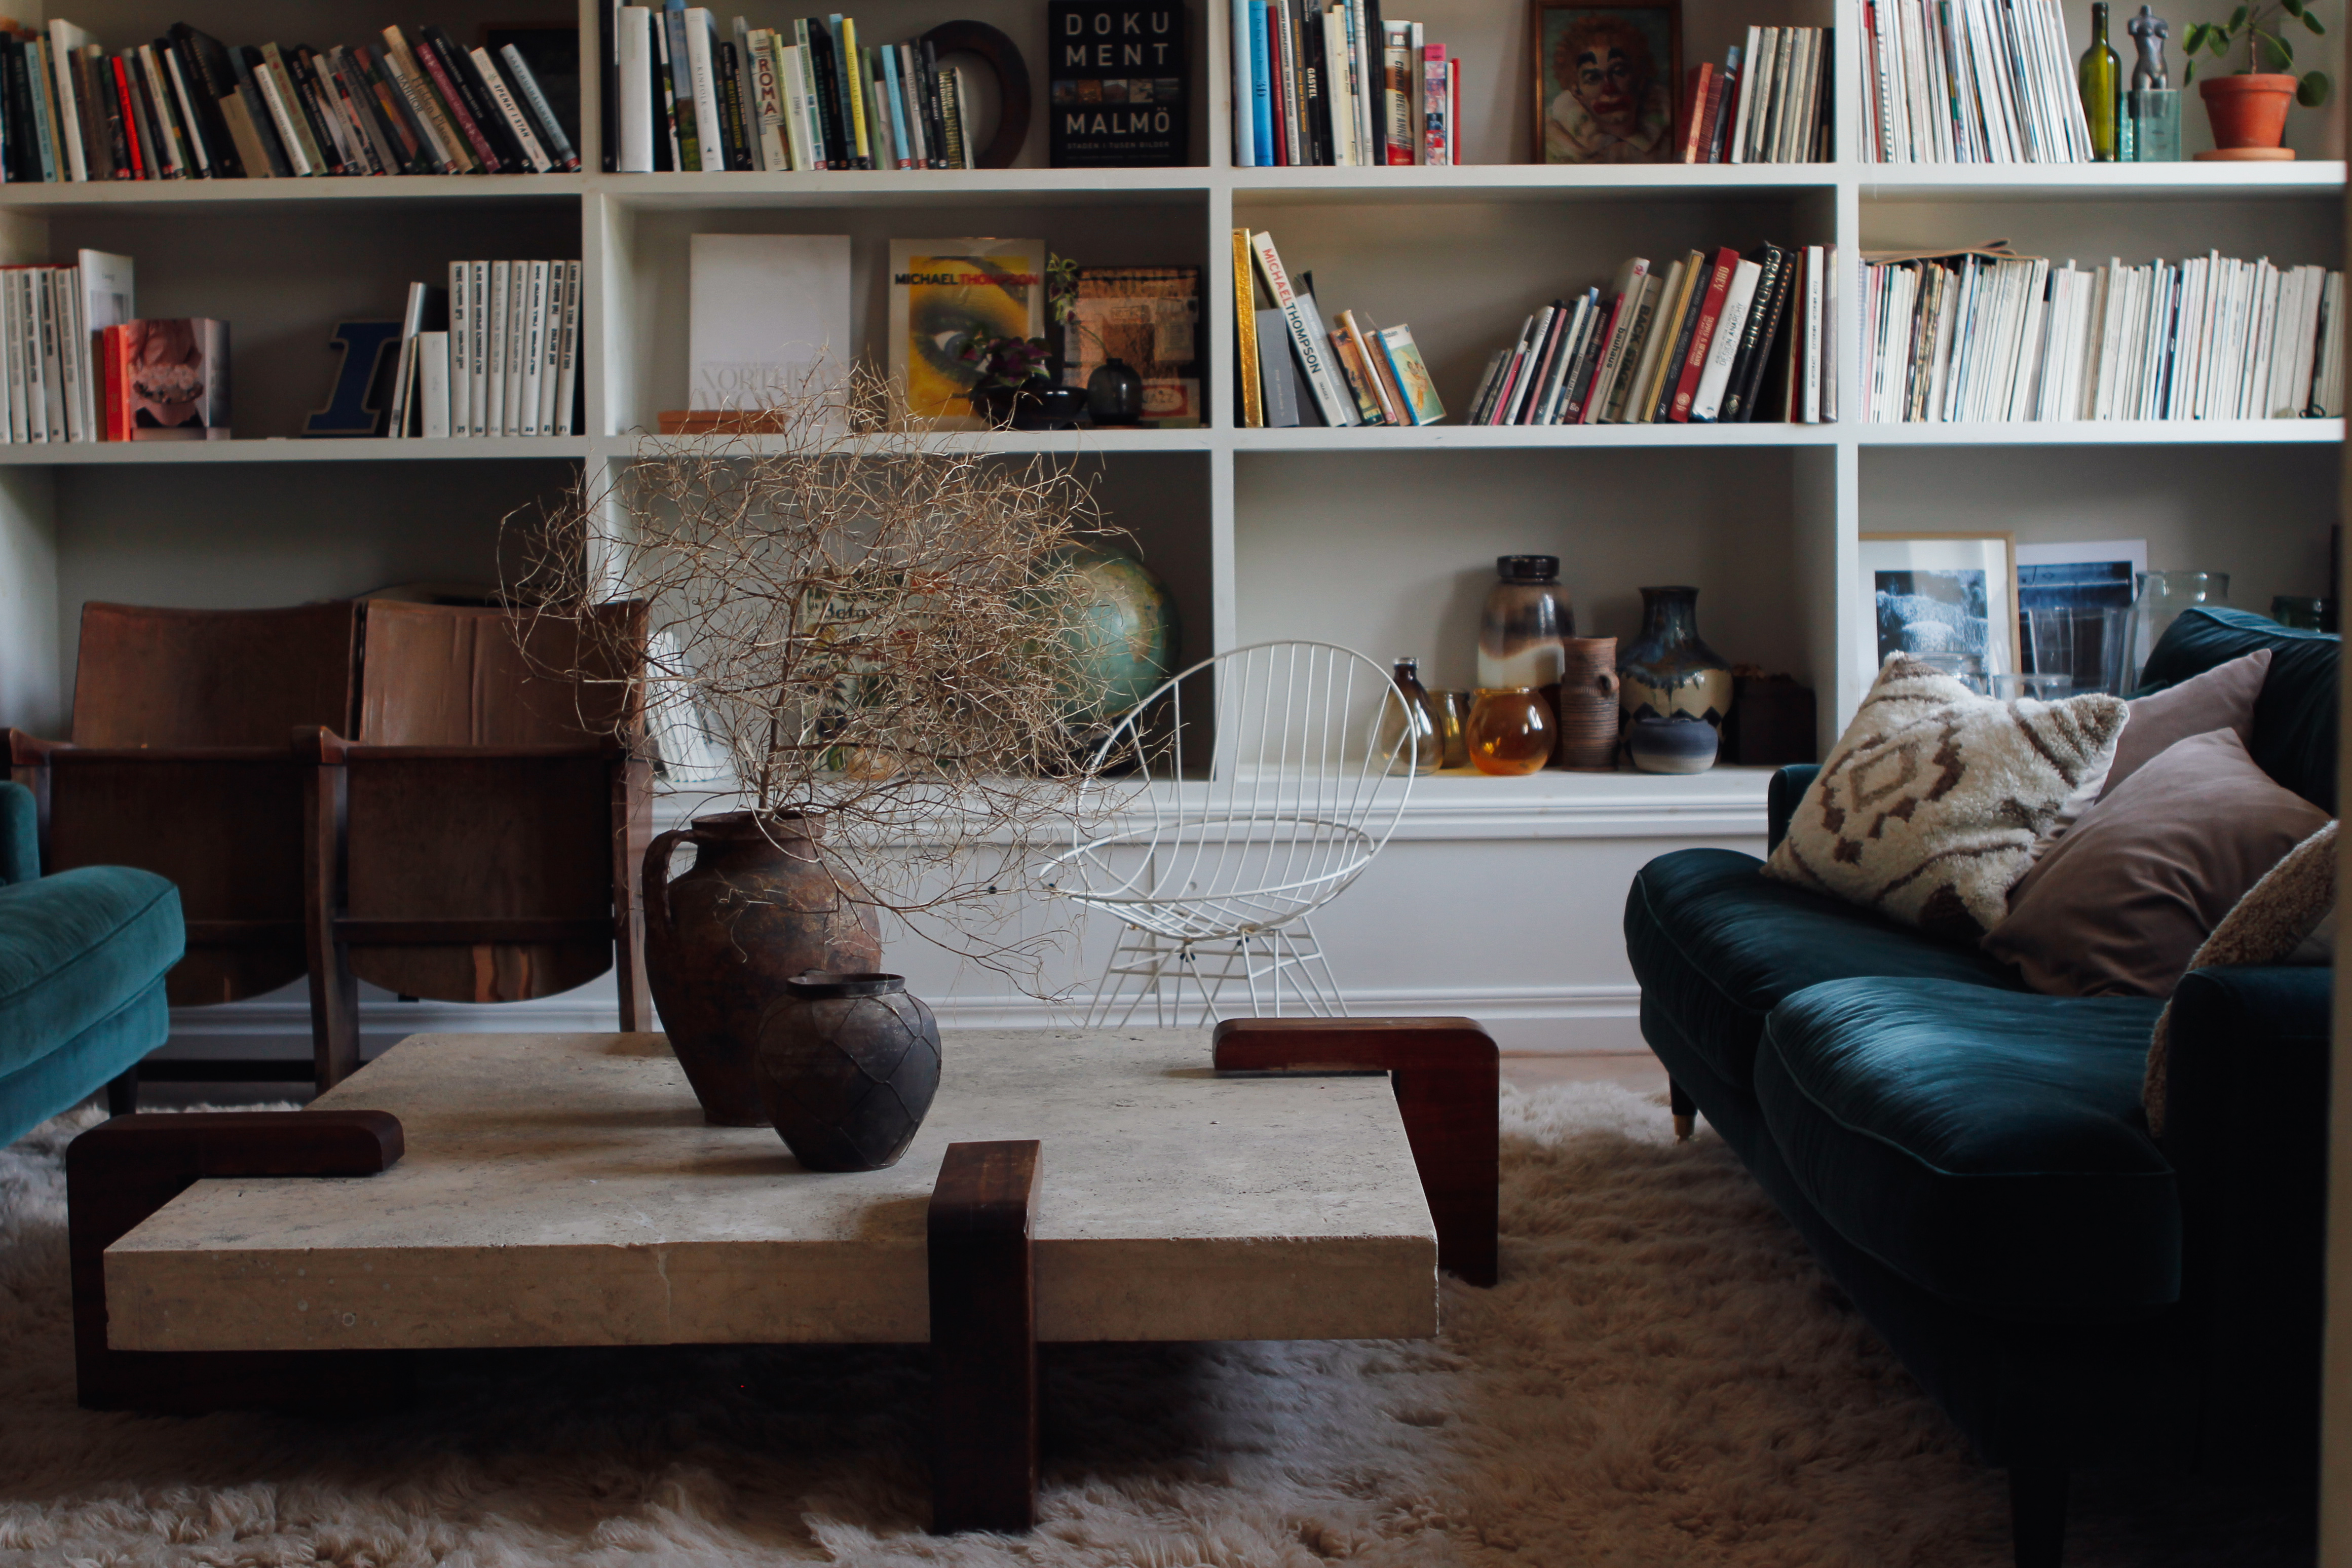 Shaggy Oatmeal in living room with green sofa by Malin Persson